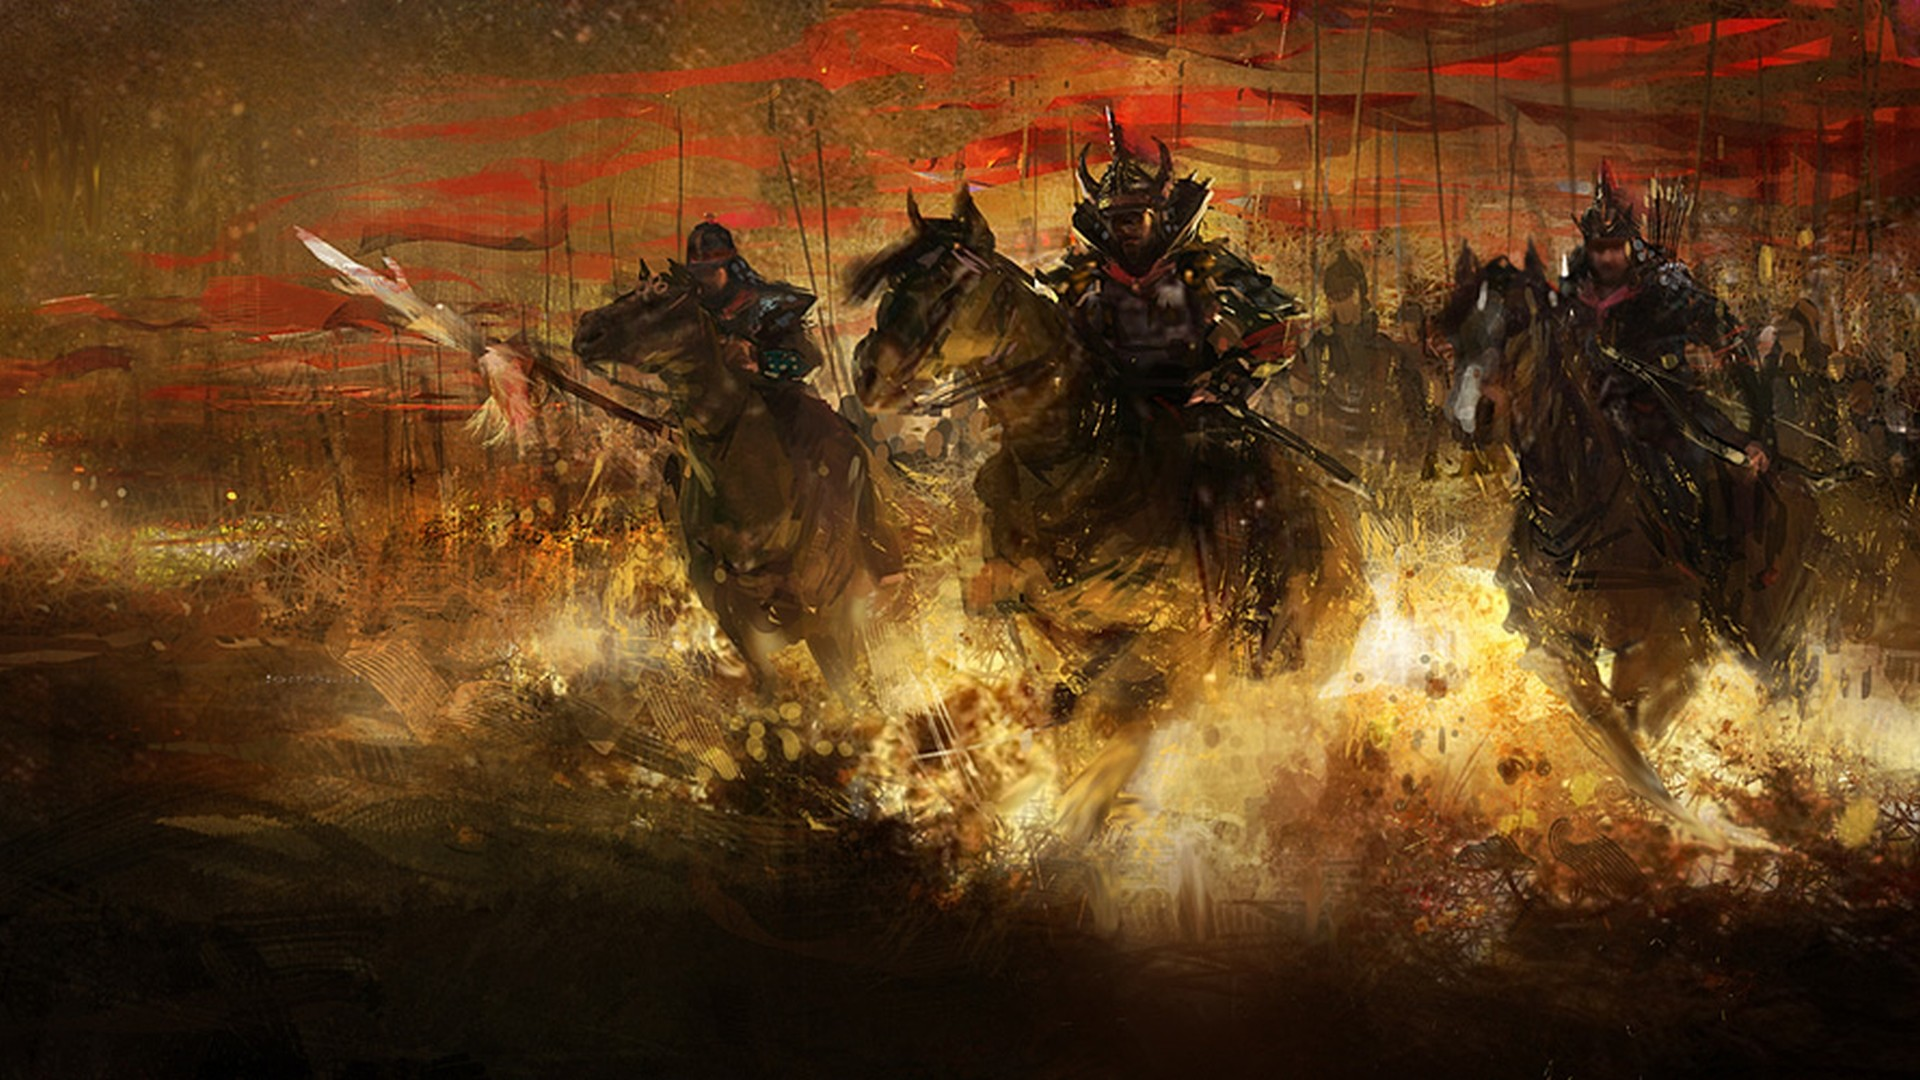 Samurai wallpaper 1920x1080 75 images - Battlefield screensaver ...